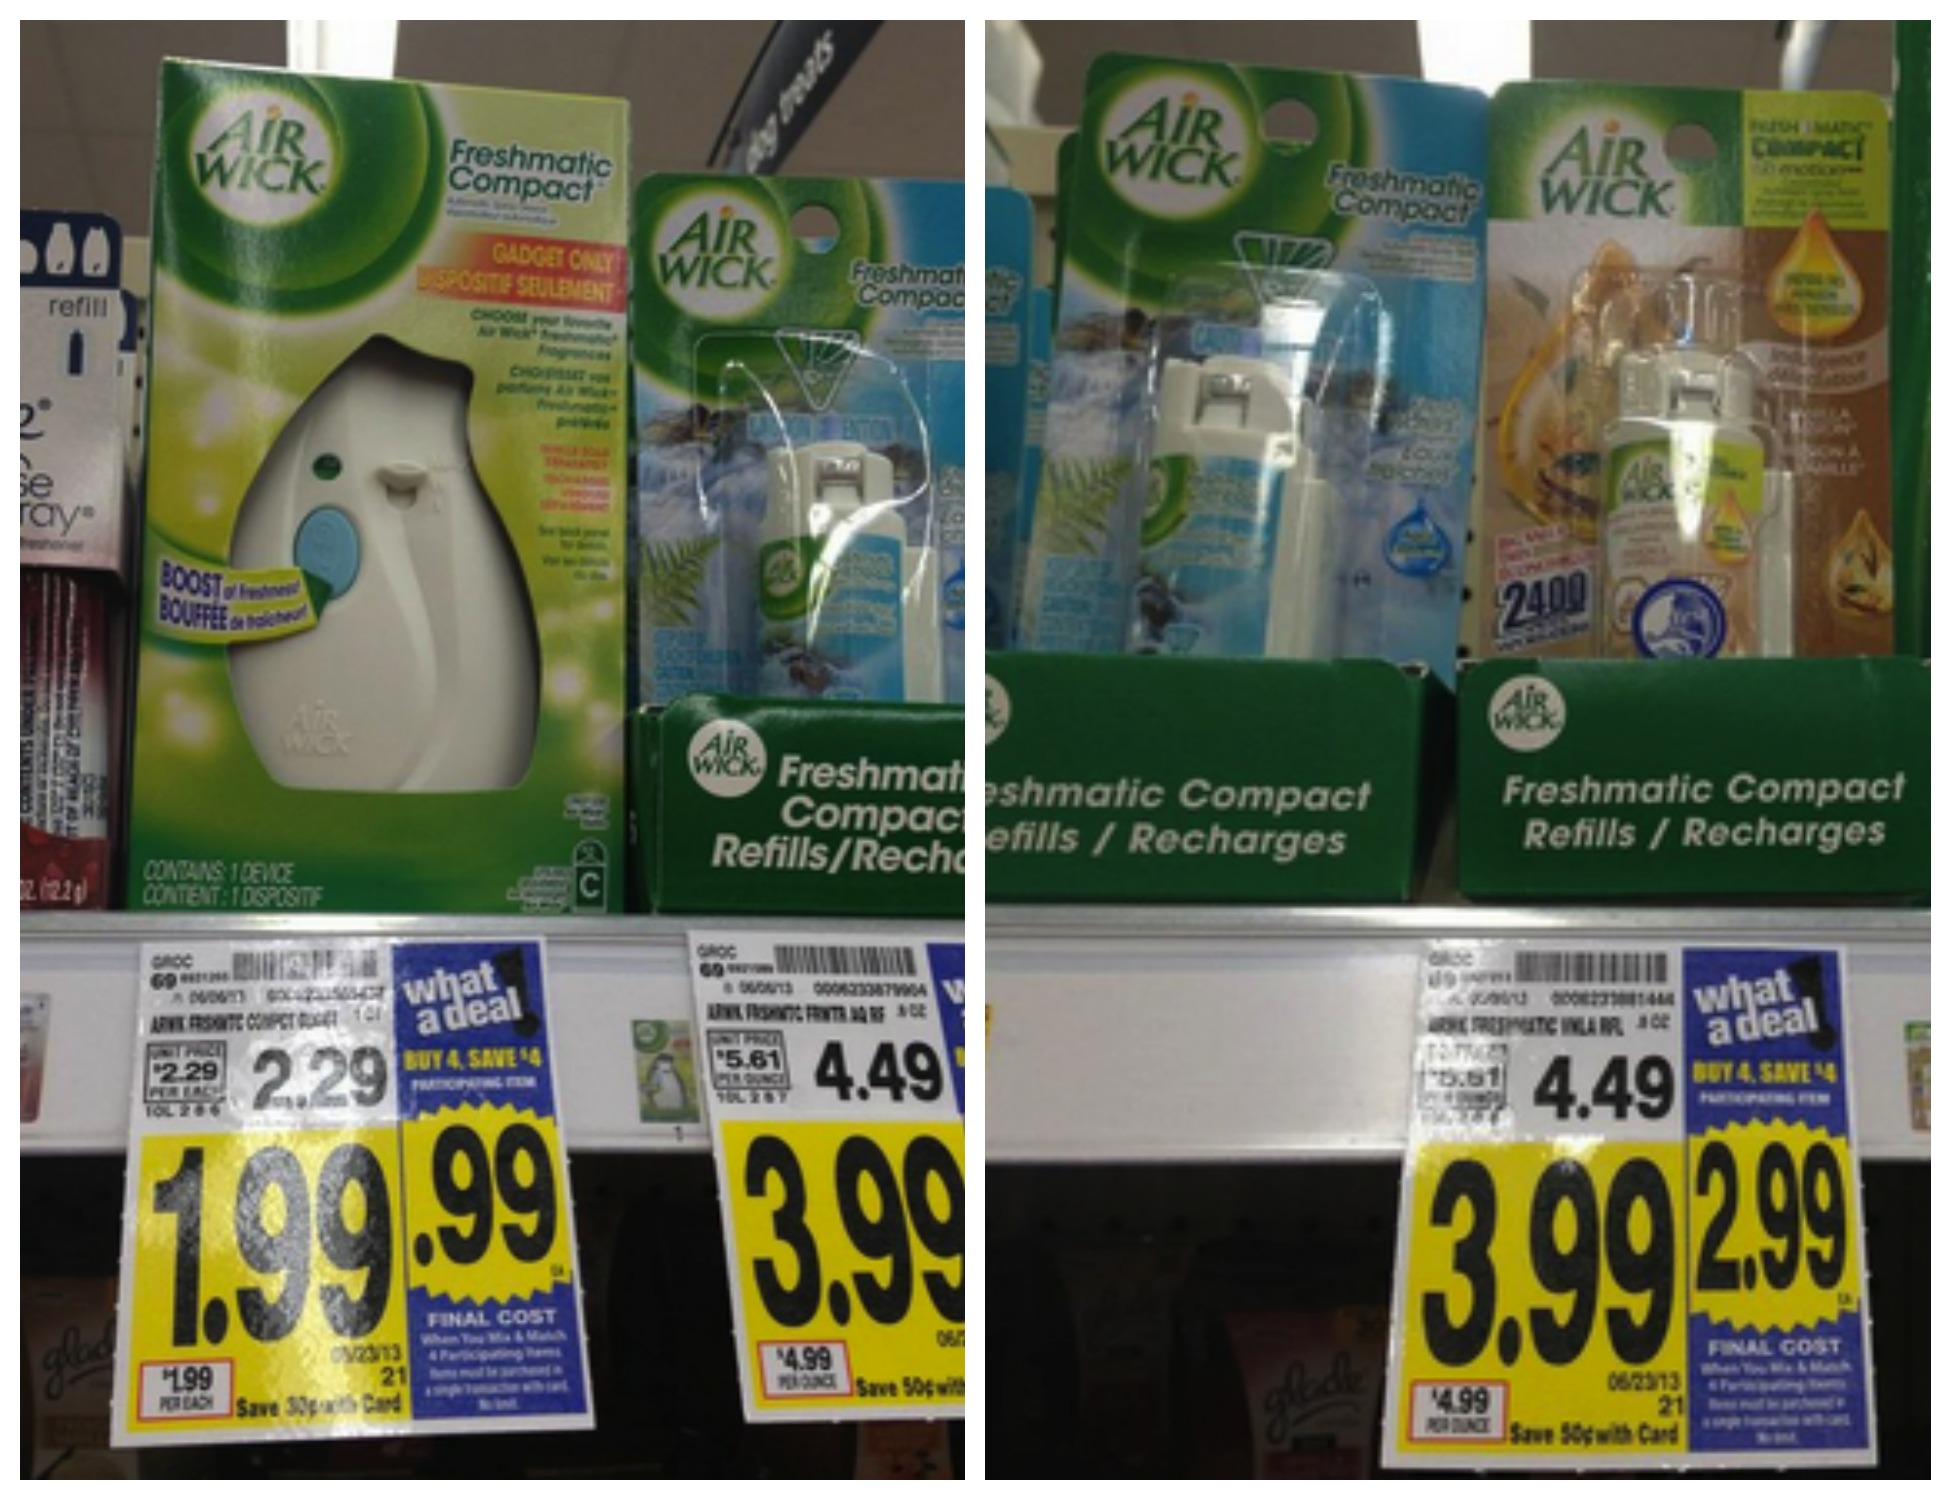 Air Wick Freshmatic Coupons Printable 2018 Coupon Codes For Toys R